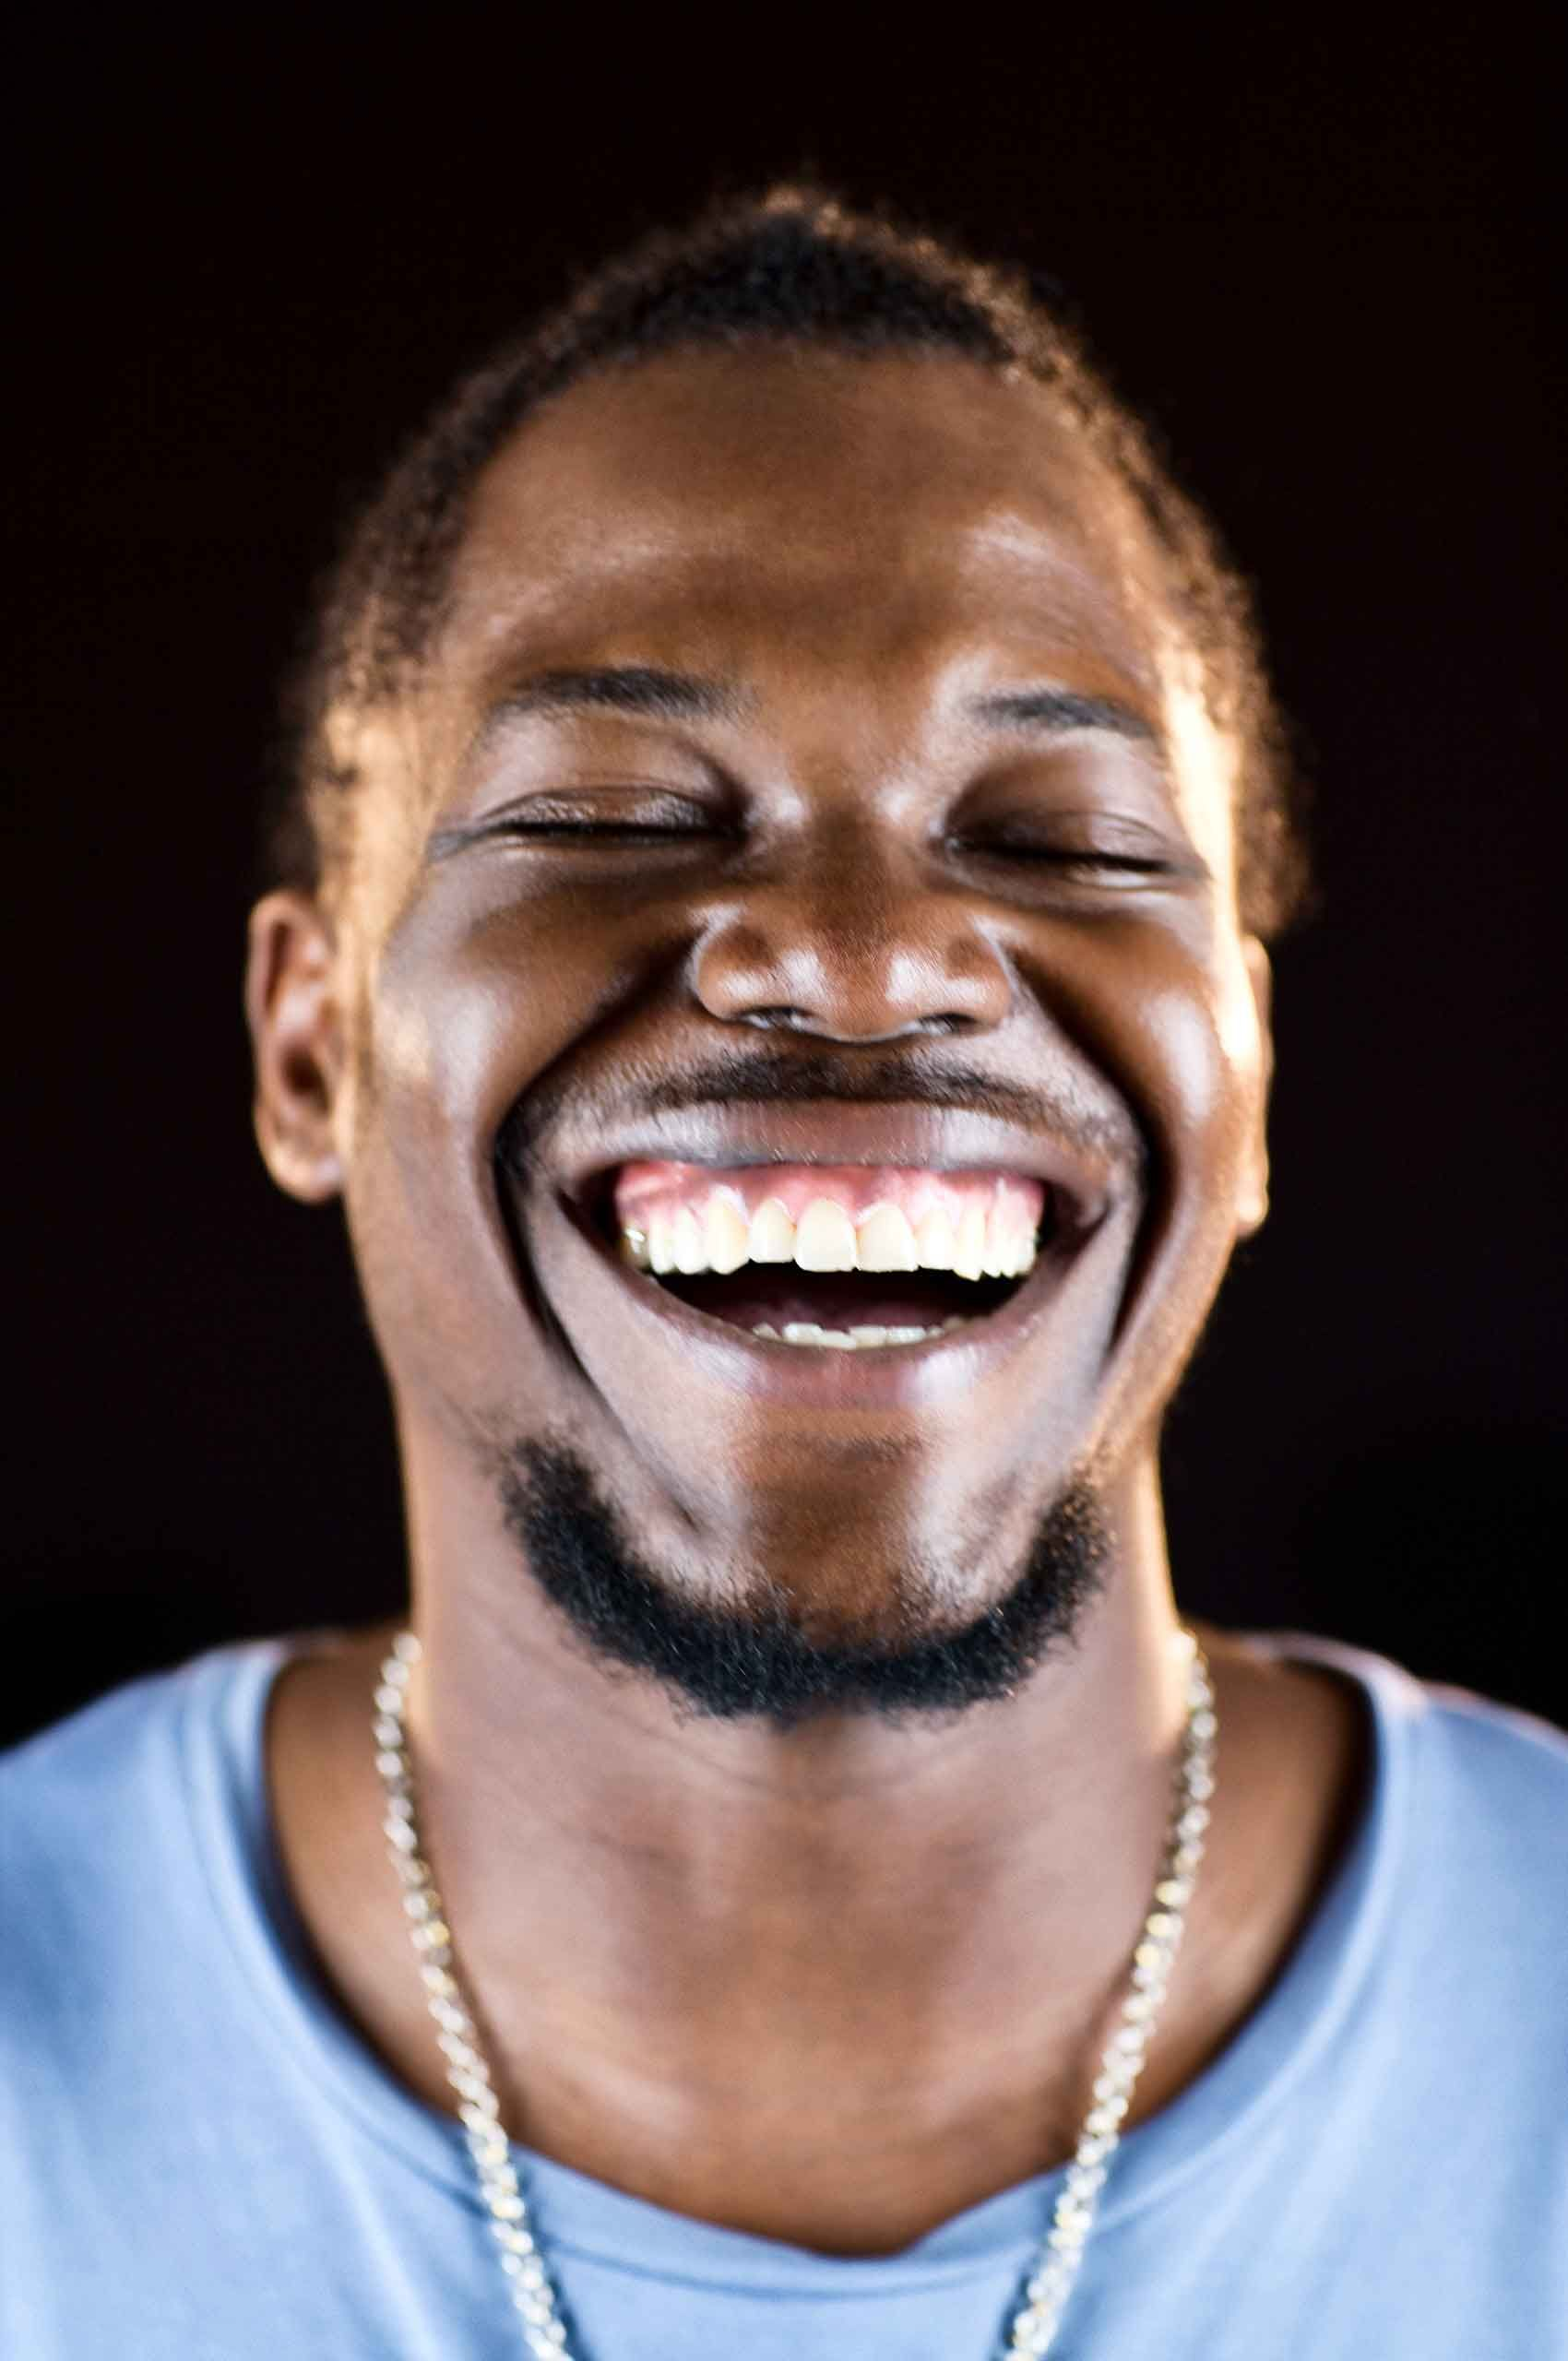 Africanamerican-man-laughing-by-HenrikOlundPhotography.jpg